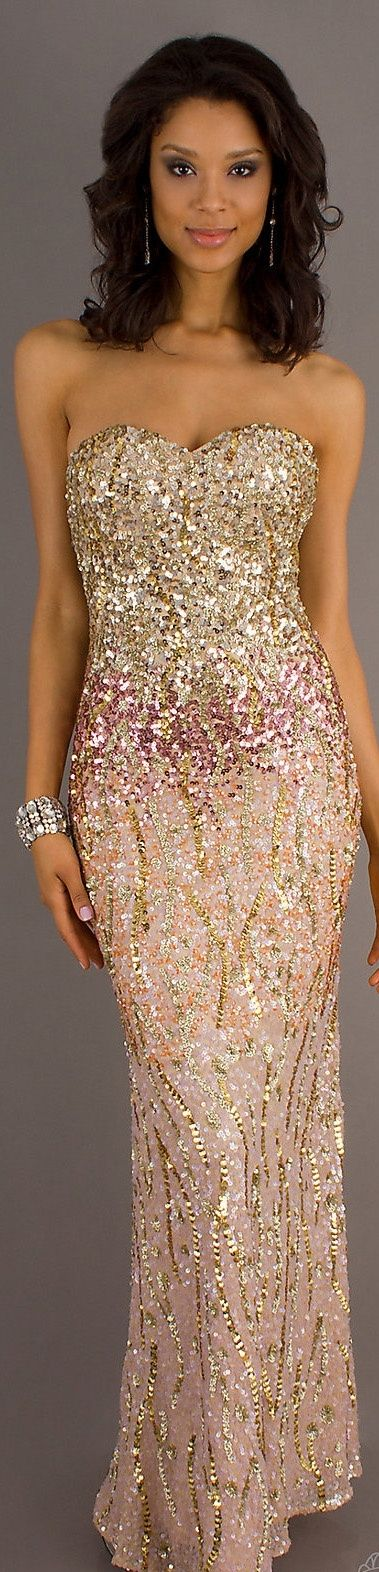 """stunning sequined gown by SCALA 2013 #Fashion ✮✮""""Feel free to share on Pinterest"""" ♥ღ www.HEALTHLIFE-INFO.COM"""